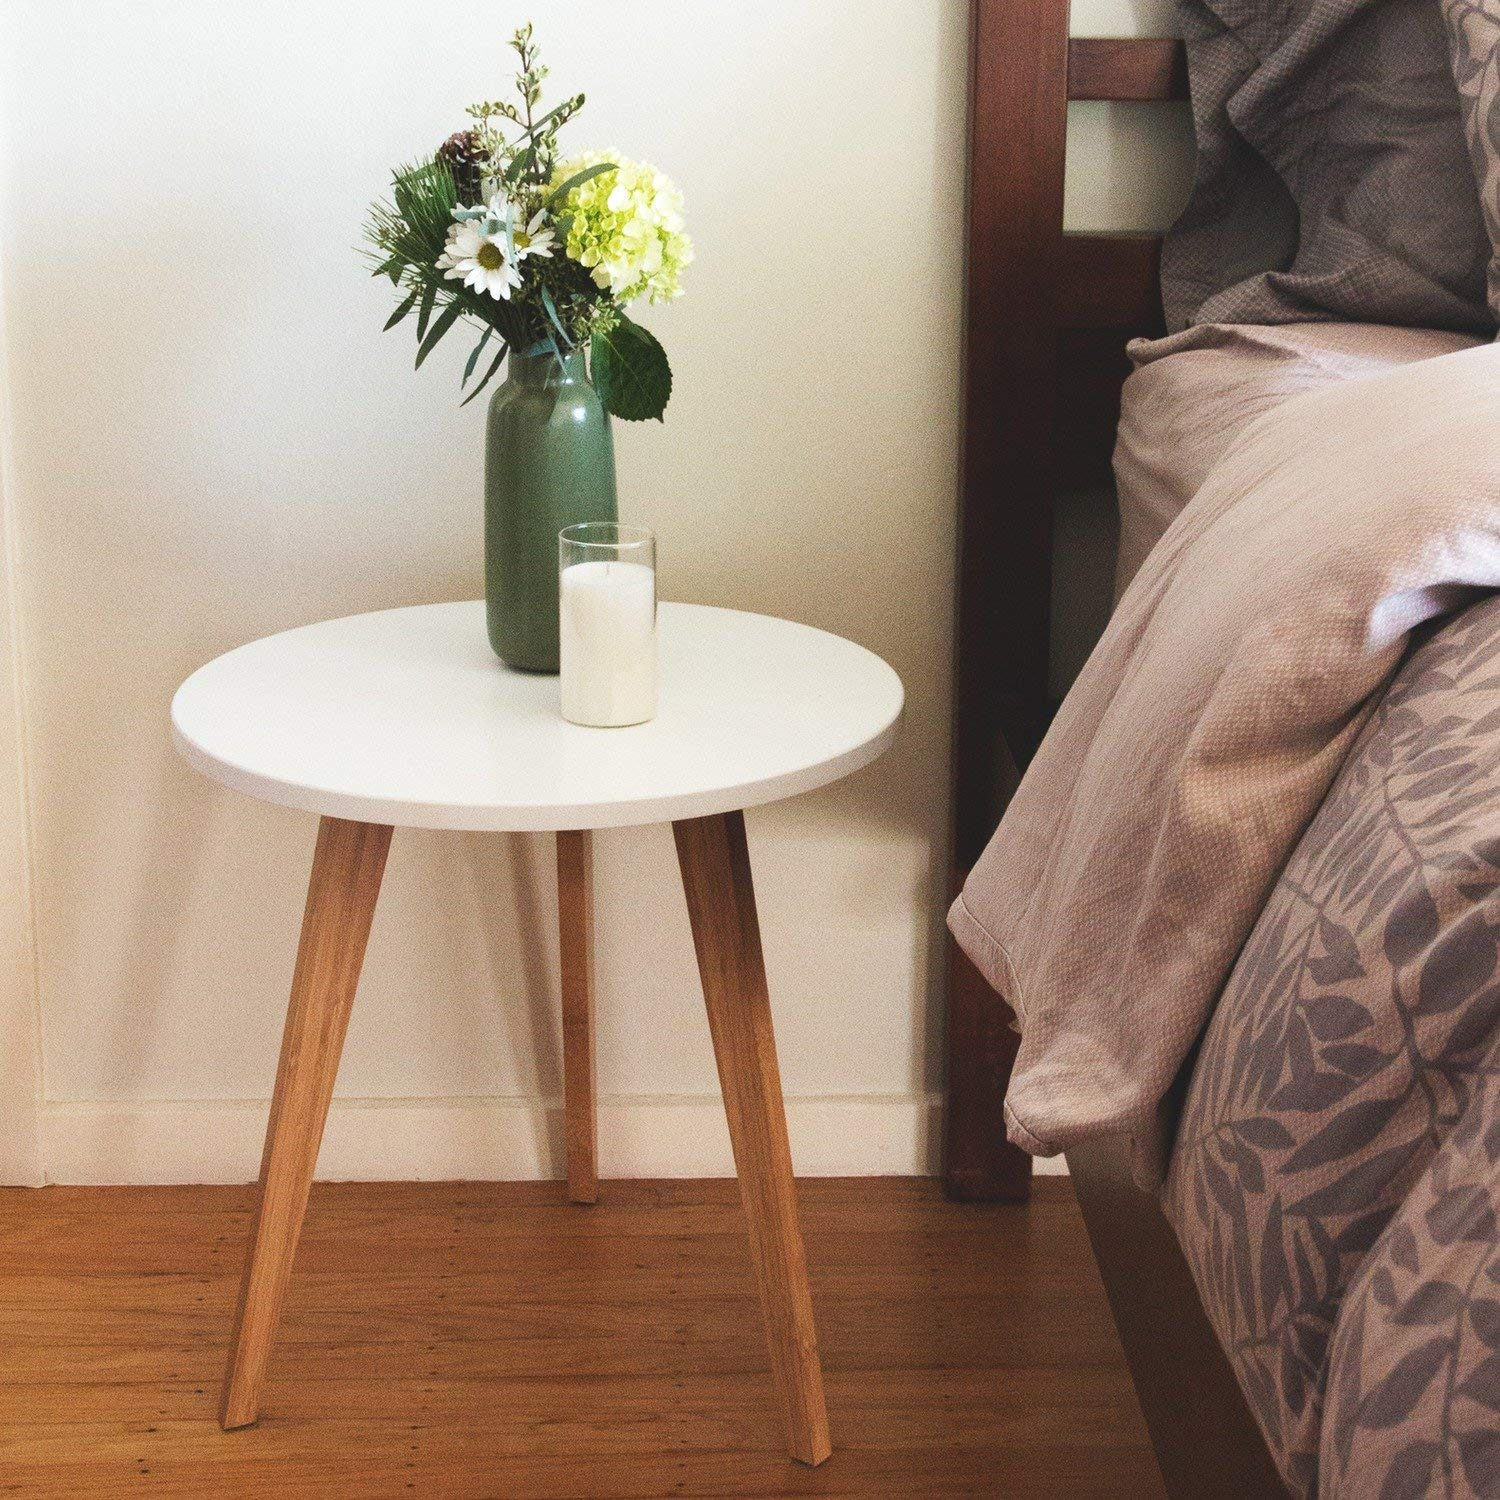 STNDRD. Mid-Century Modern End Table: Perfect Bedside Nightstand or Living Room Side/Accent Table - White Round Tabletop & 3 Bamboo Legs [1-Pack] by STNDRD.